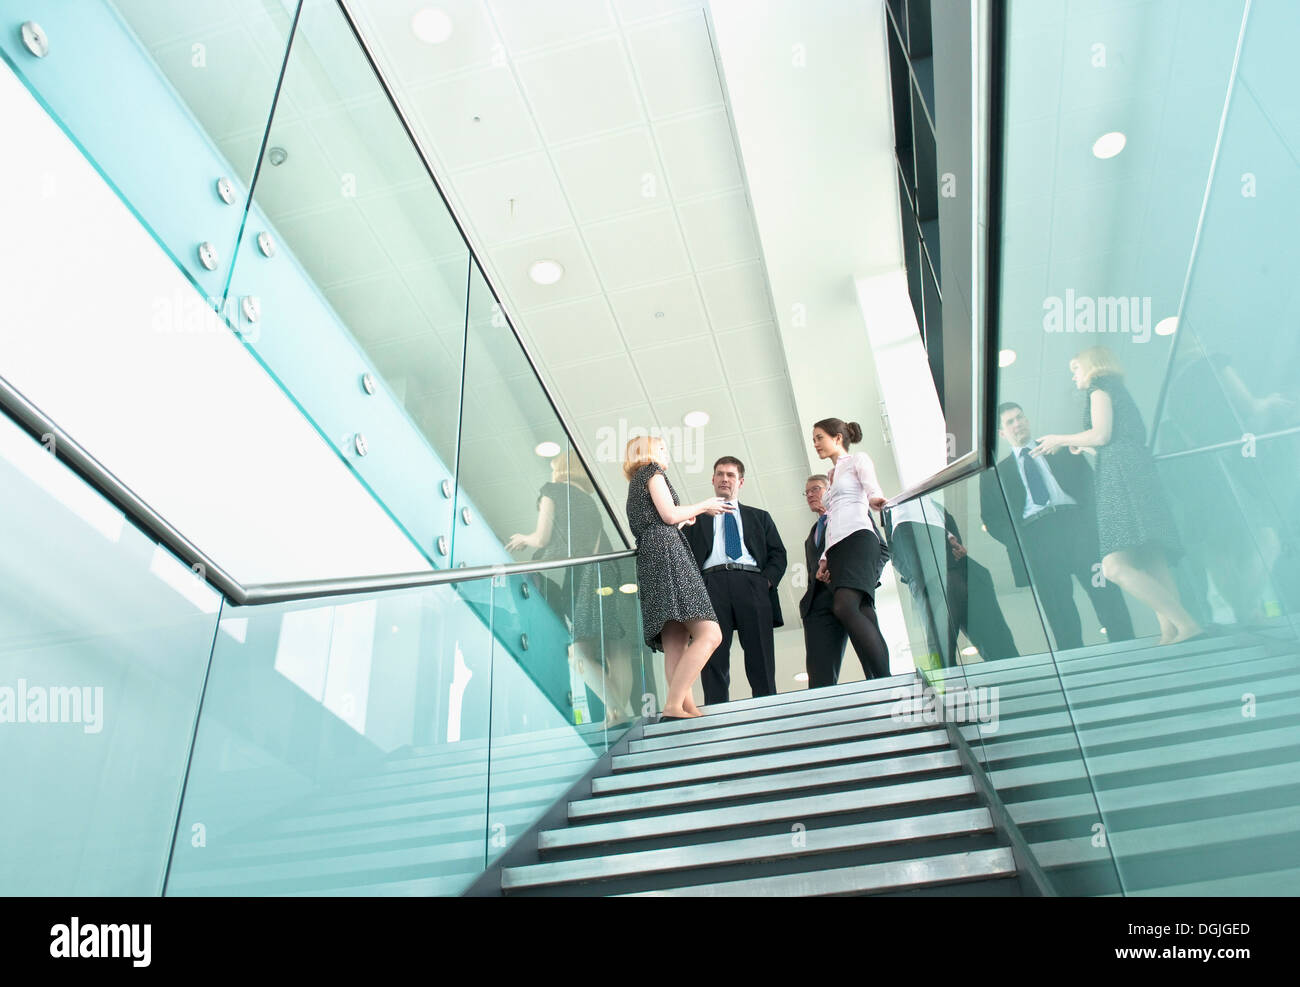 Colleagues standing on staircase in office building - Stock Image